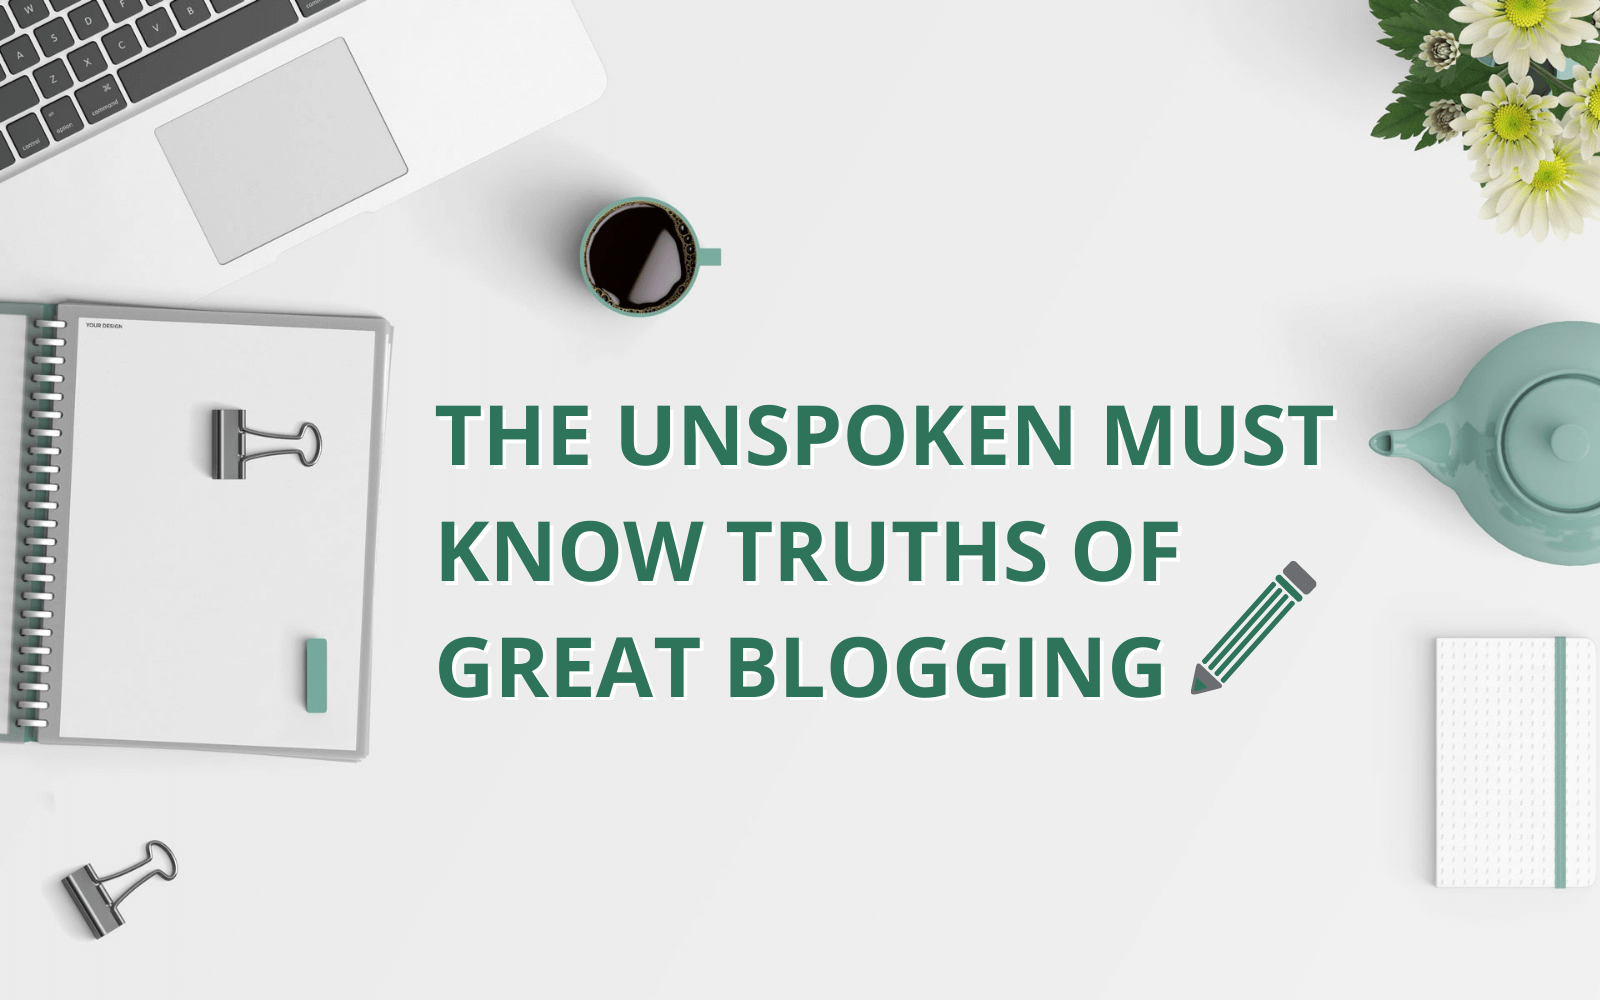 The Unspoken Must know Truths of Great Blogging